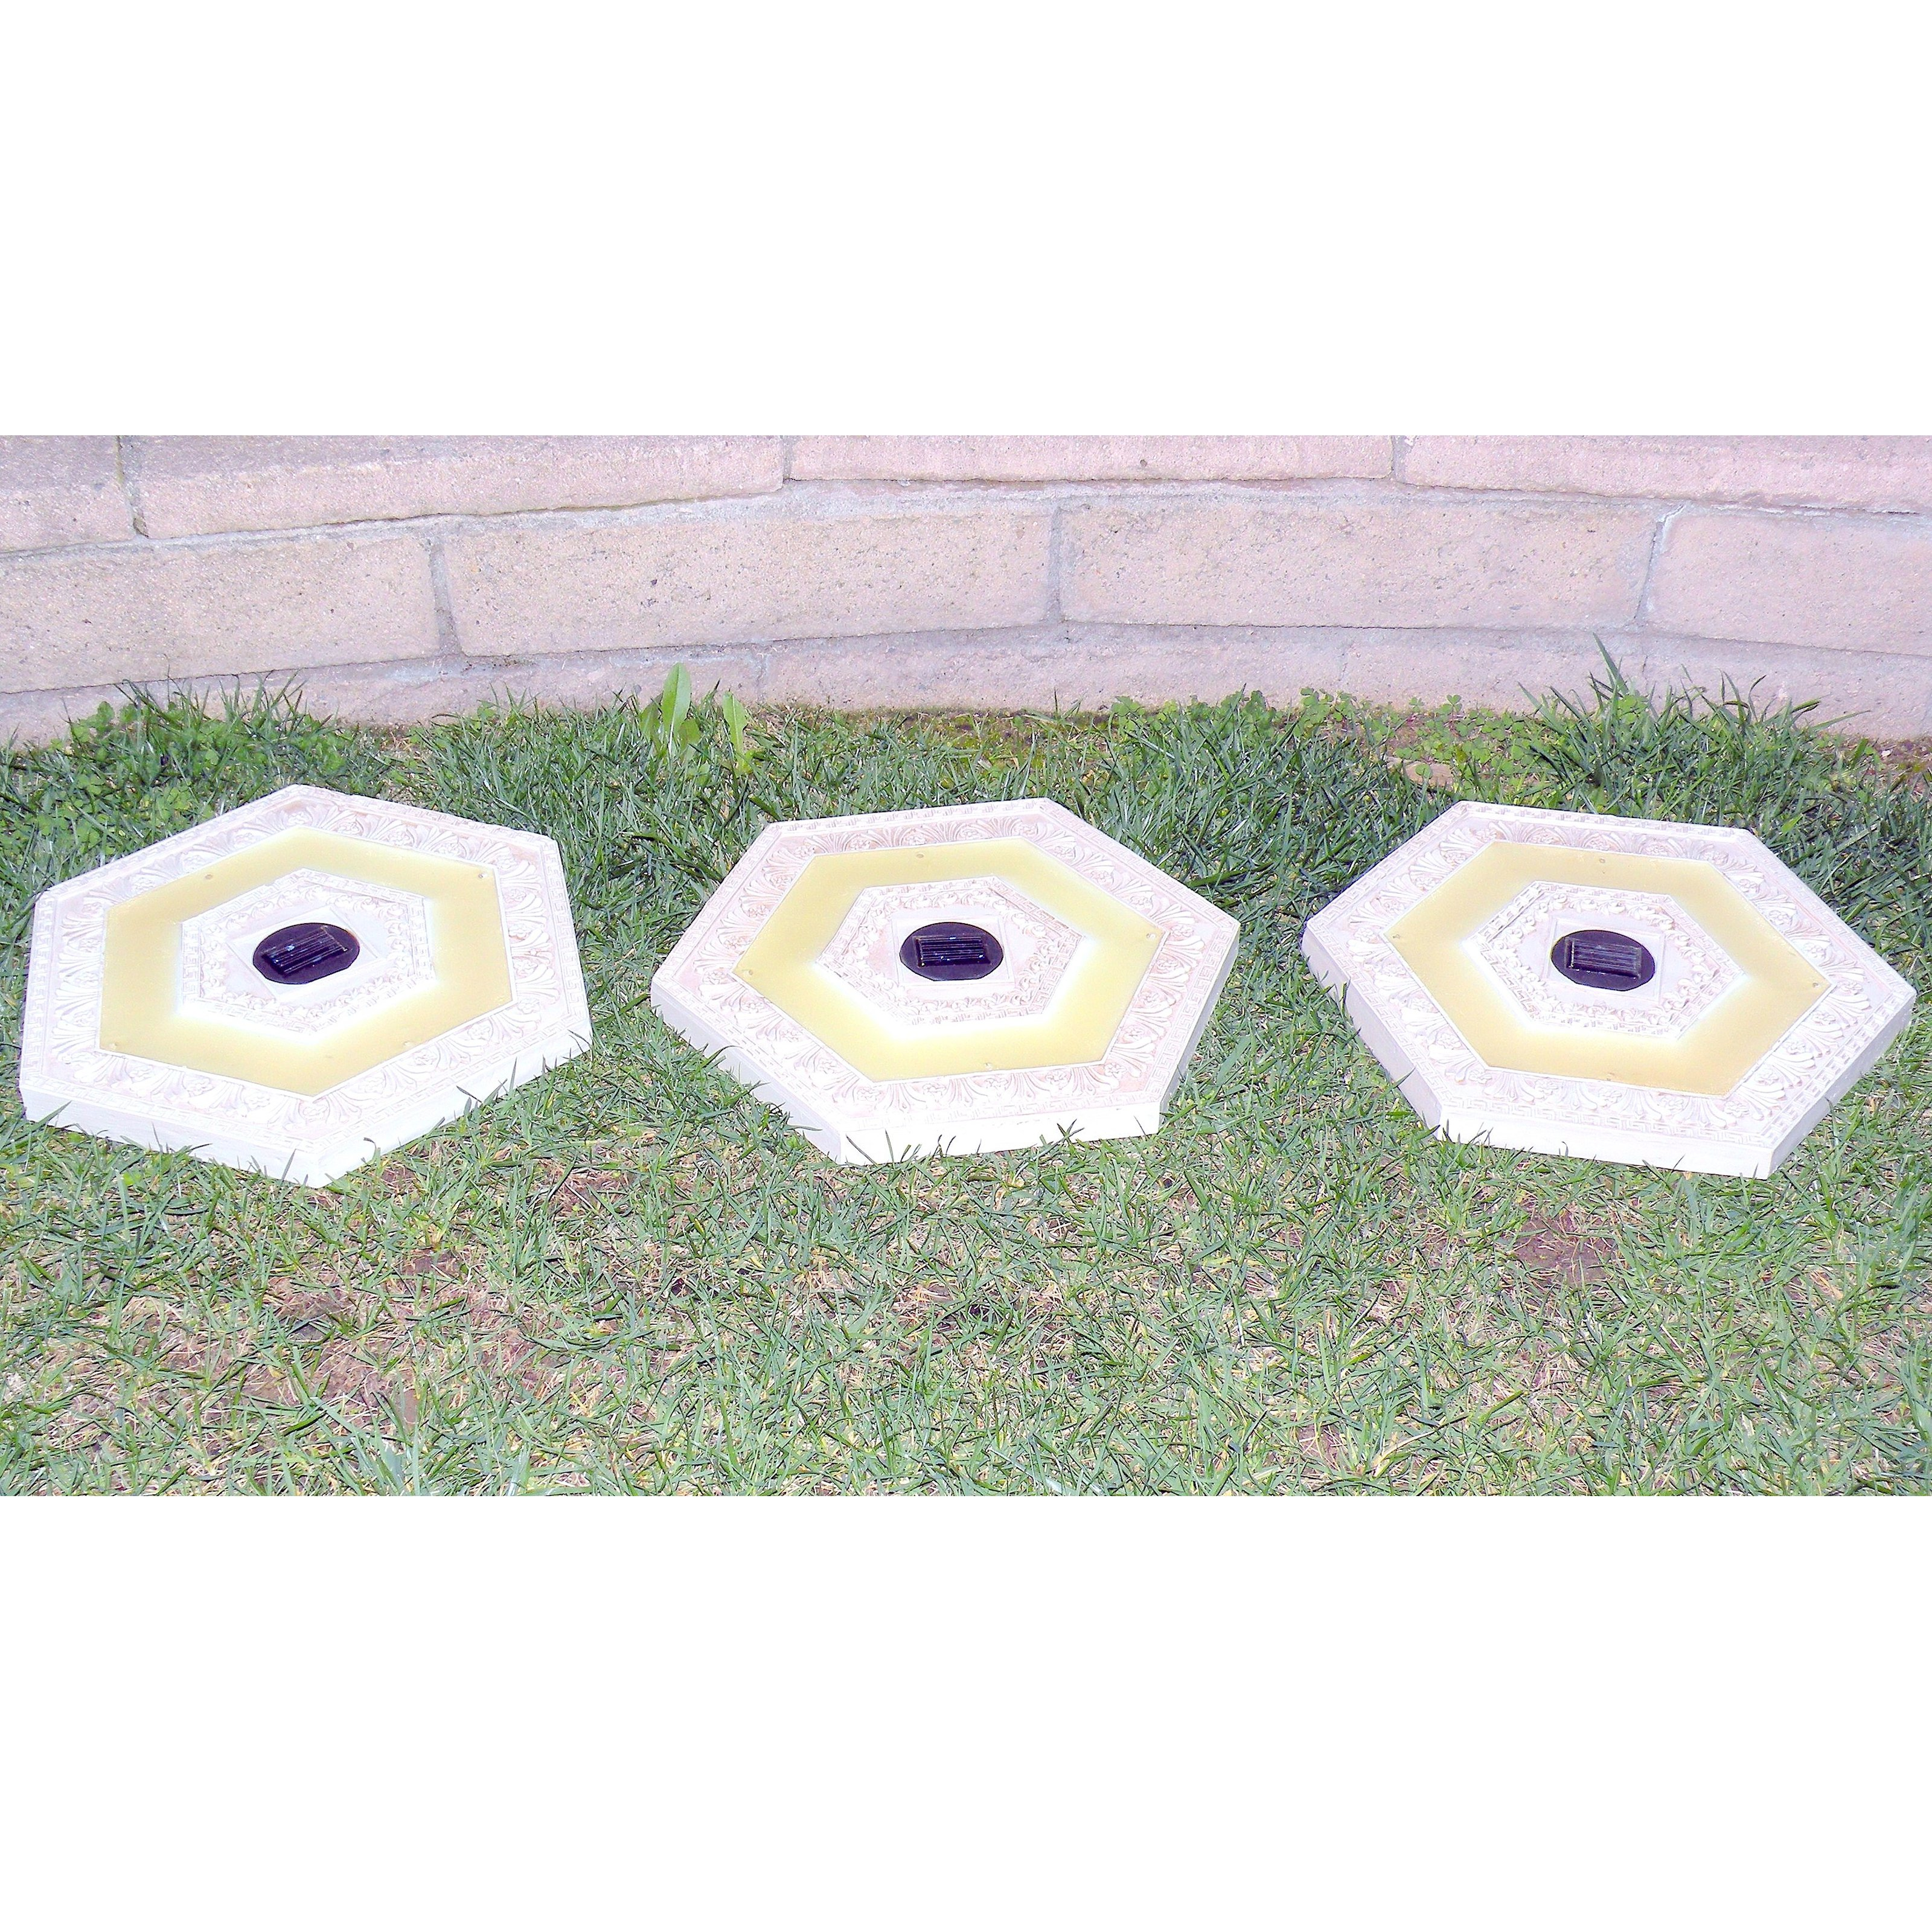 Homebrite Solar Power Hexagon White Wash Stepping Stones - Set of 3